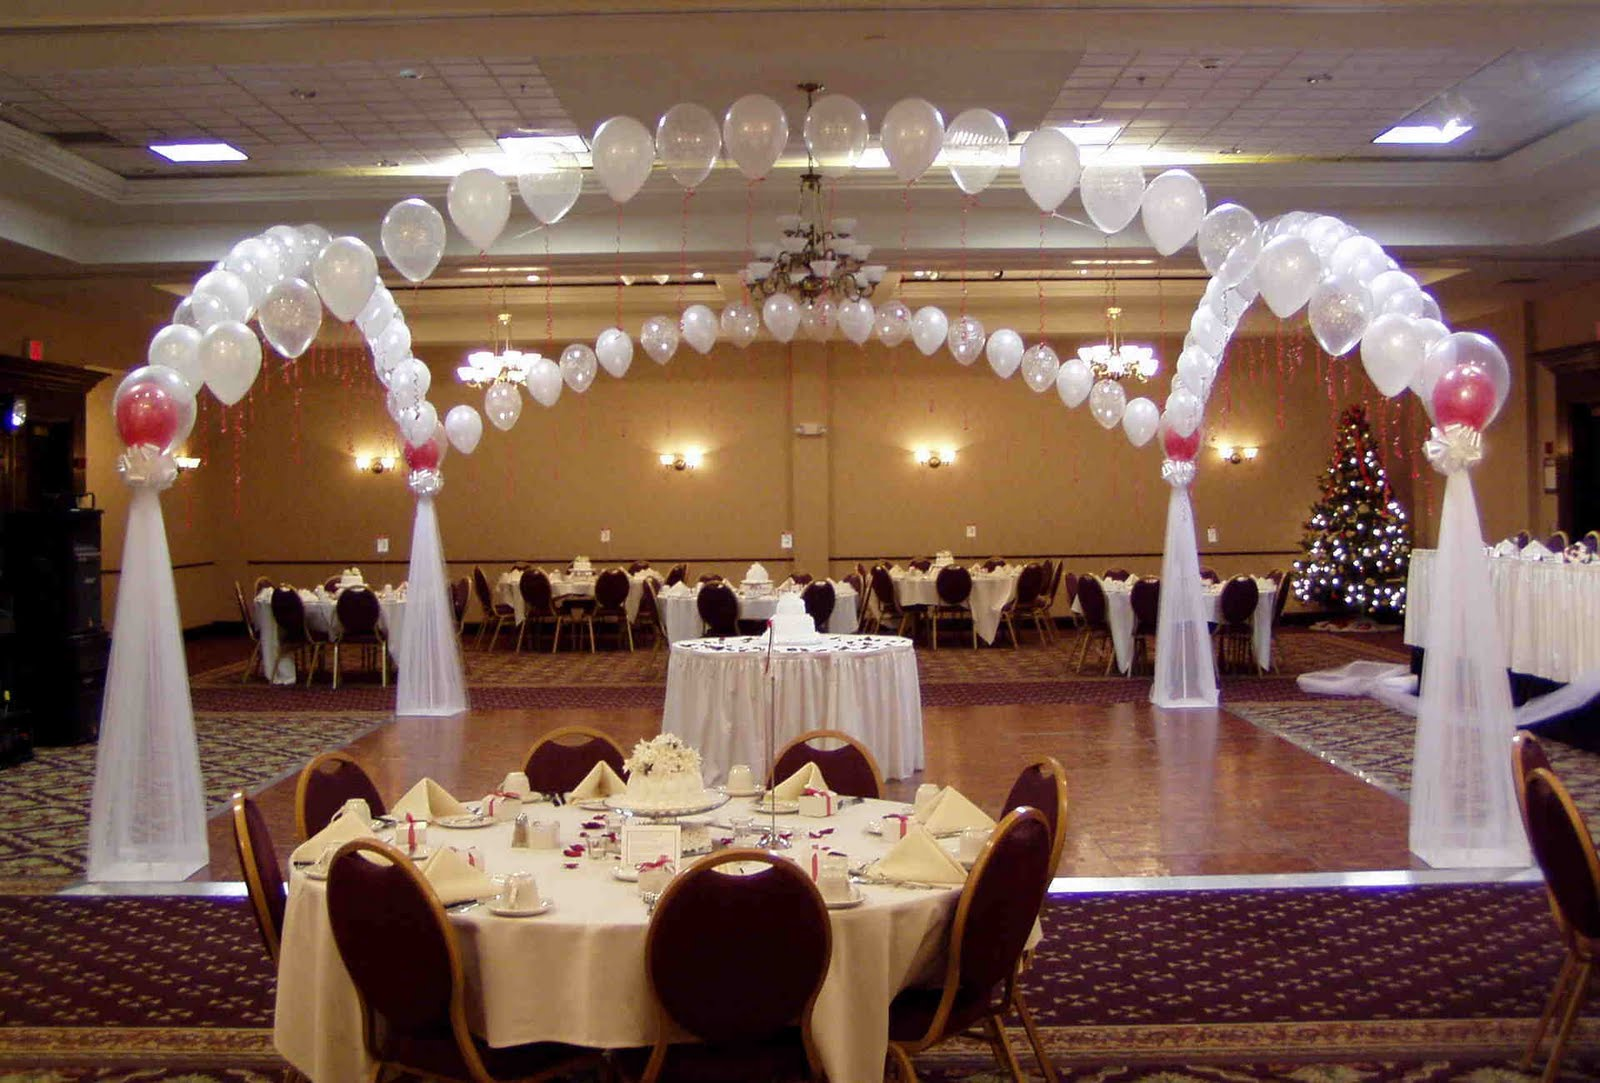 African pearl bridal balloons galore wedding theme for Arch wedding decoration ideas